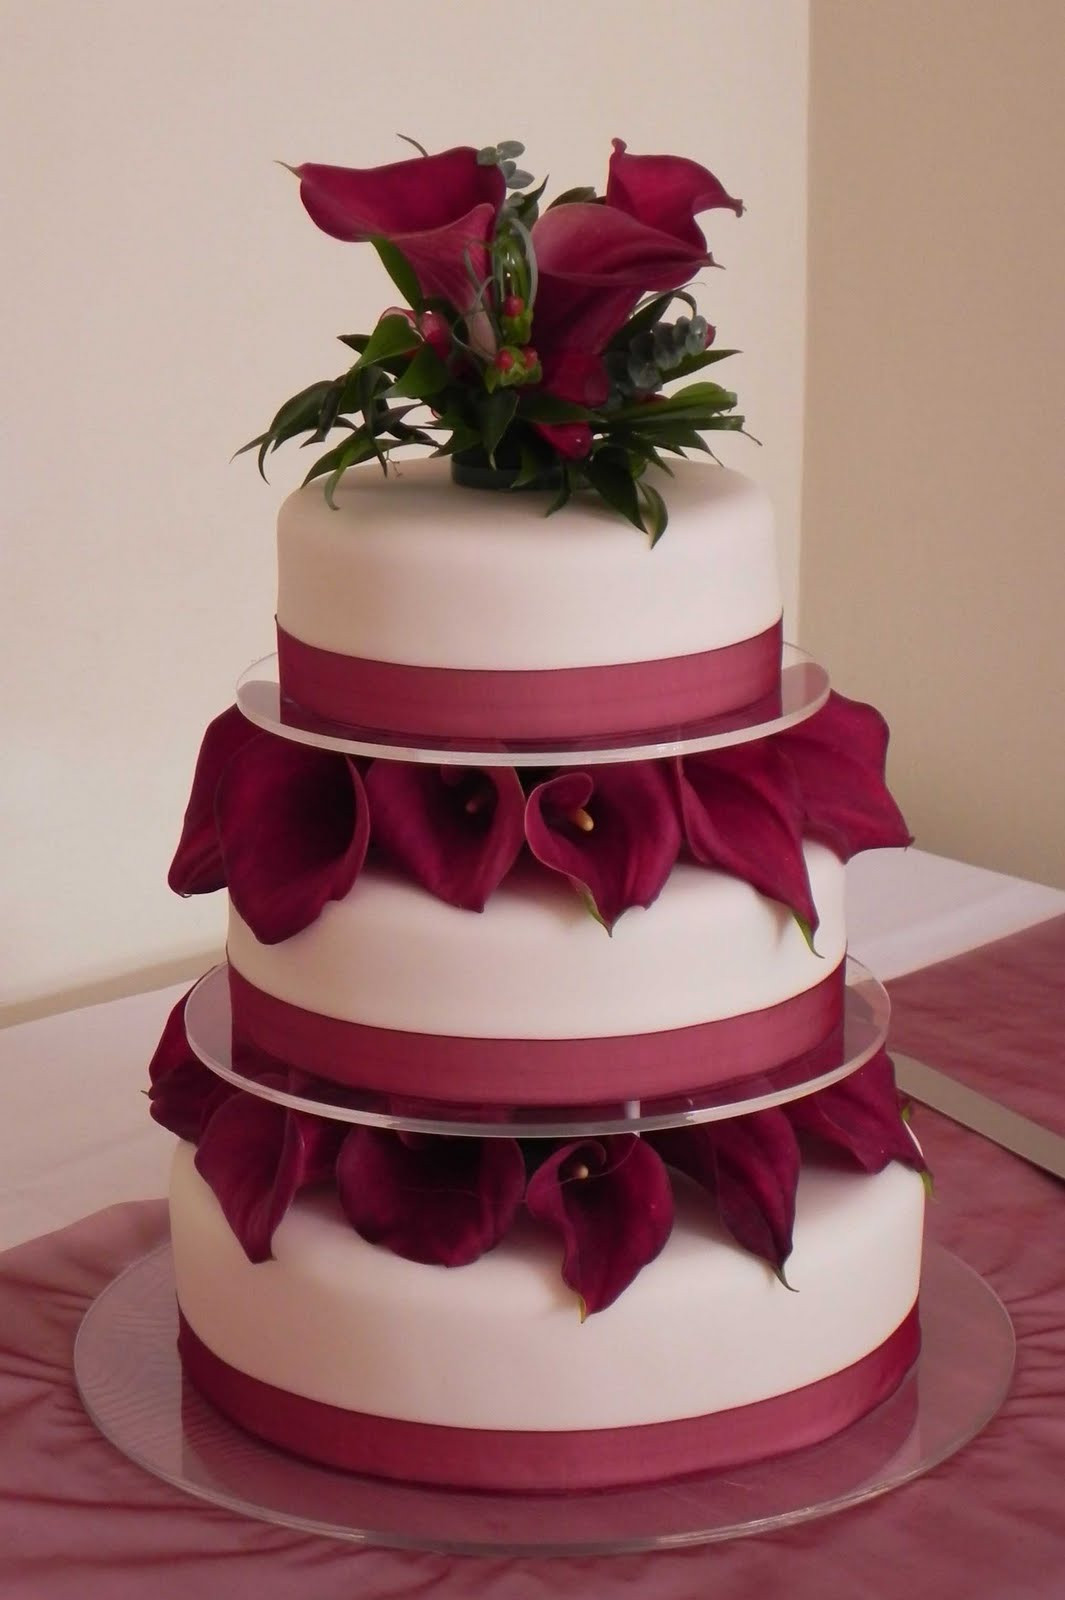 Lilly Wedding Cakes  Cake by Lisa Price Burgundy calla lily wedding cake